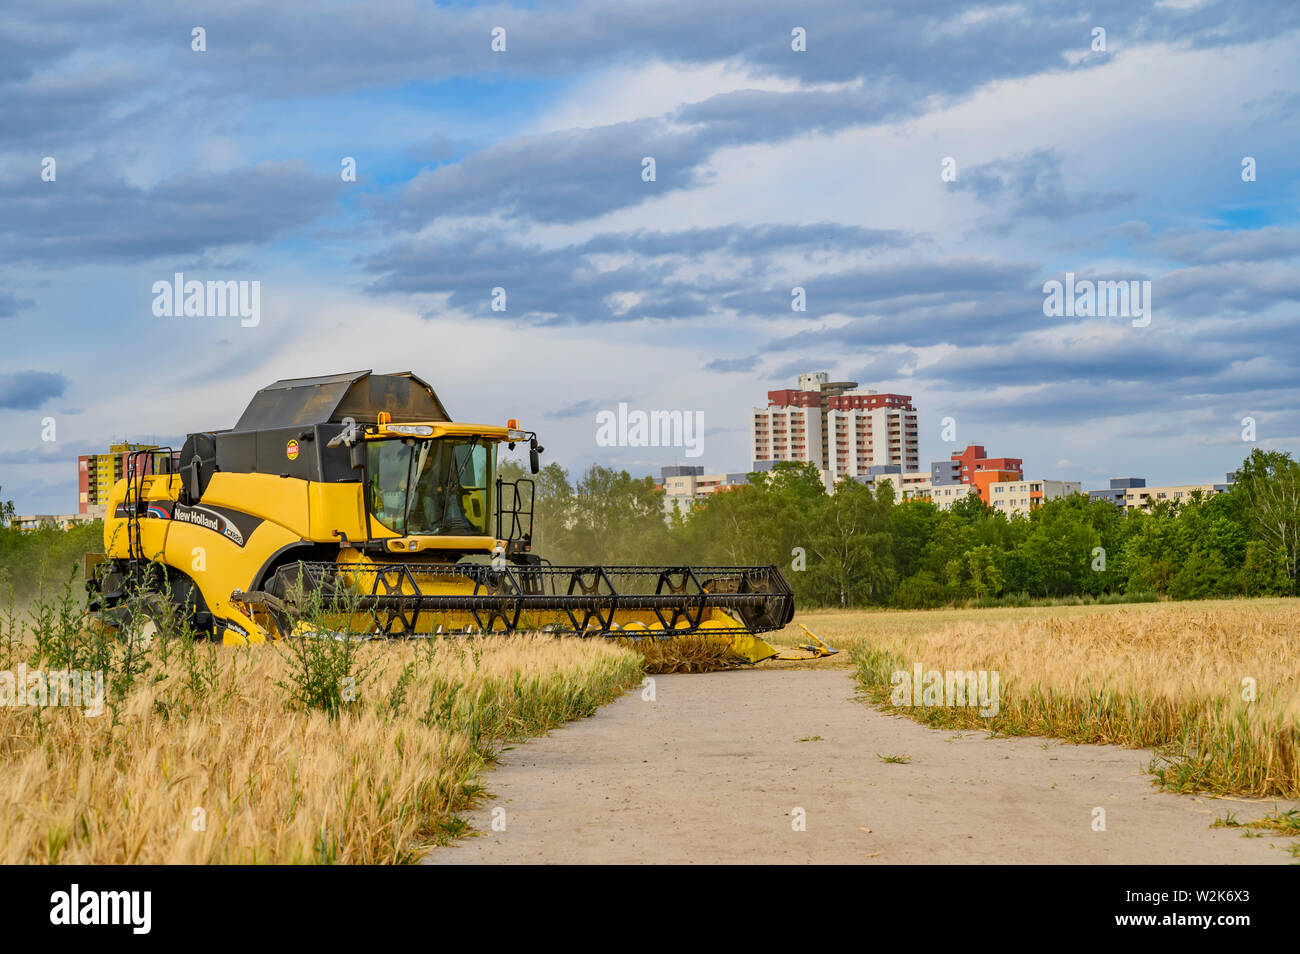 Berlin, Germany - July 05, 2019: Side view of a moving combine harvester on a field near Berlin under a cloudy sky. Stock Photo